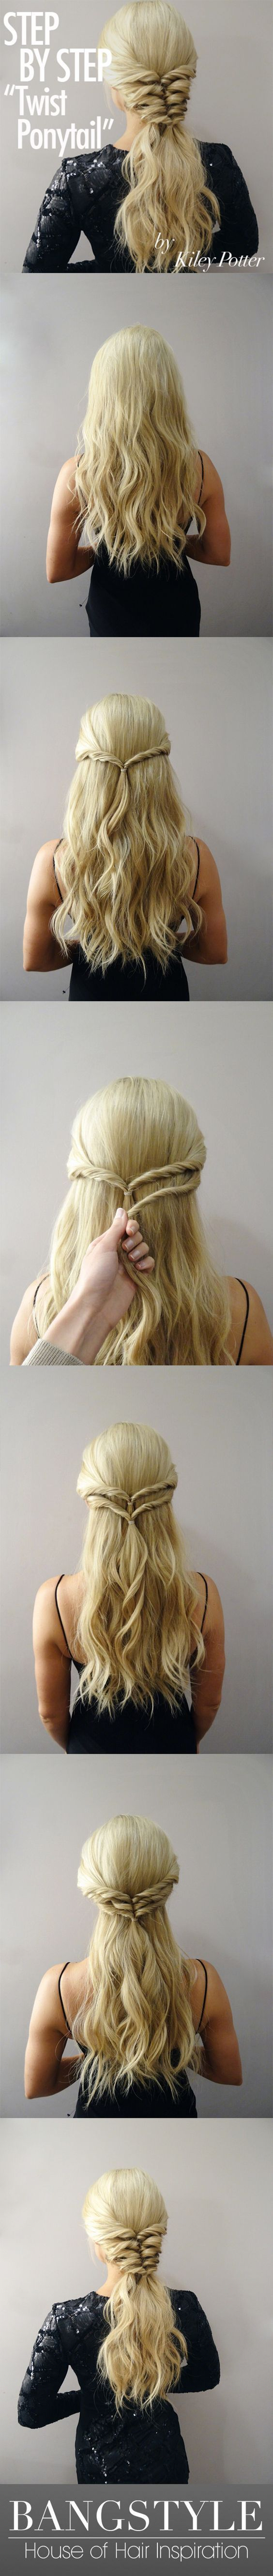 Cool simple and easy hairstyle tutorials for your daily look